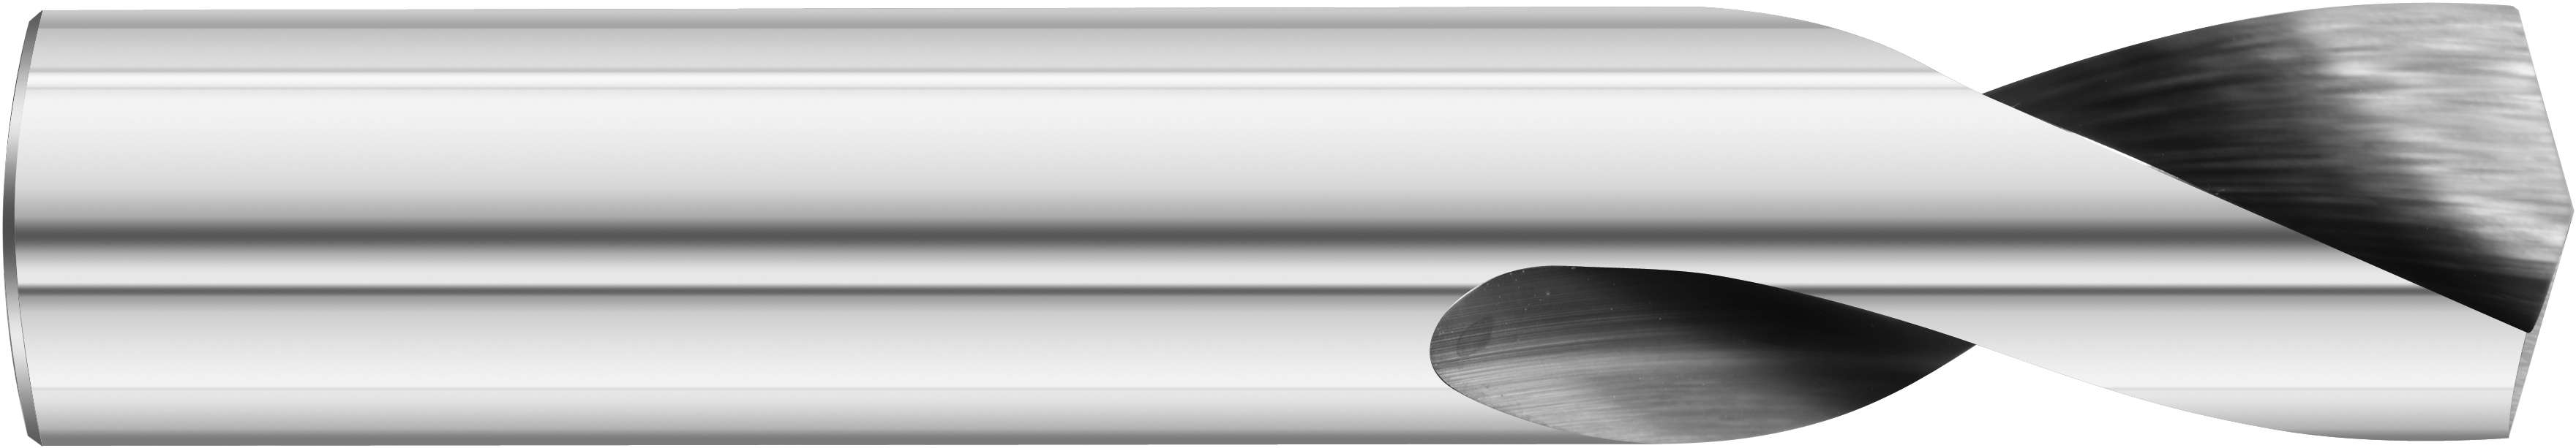 5/16 Solid Carbide Nc Spotting Dril 3xd Length Cam Relieved Se – 15750